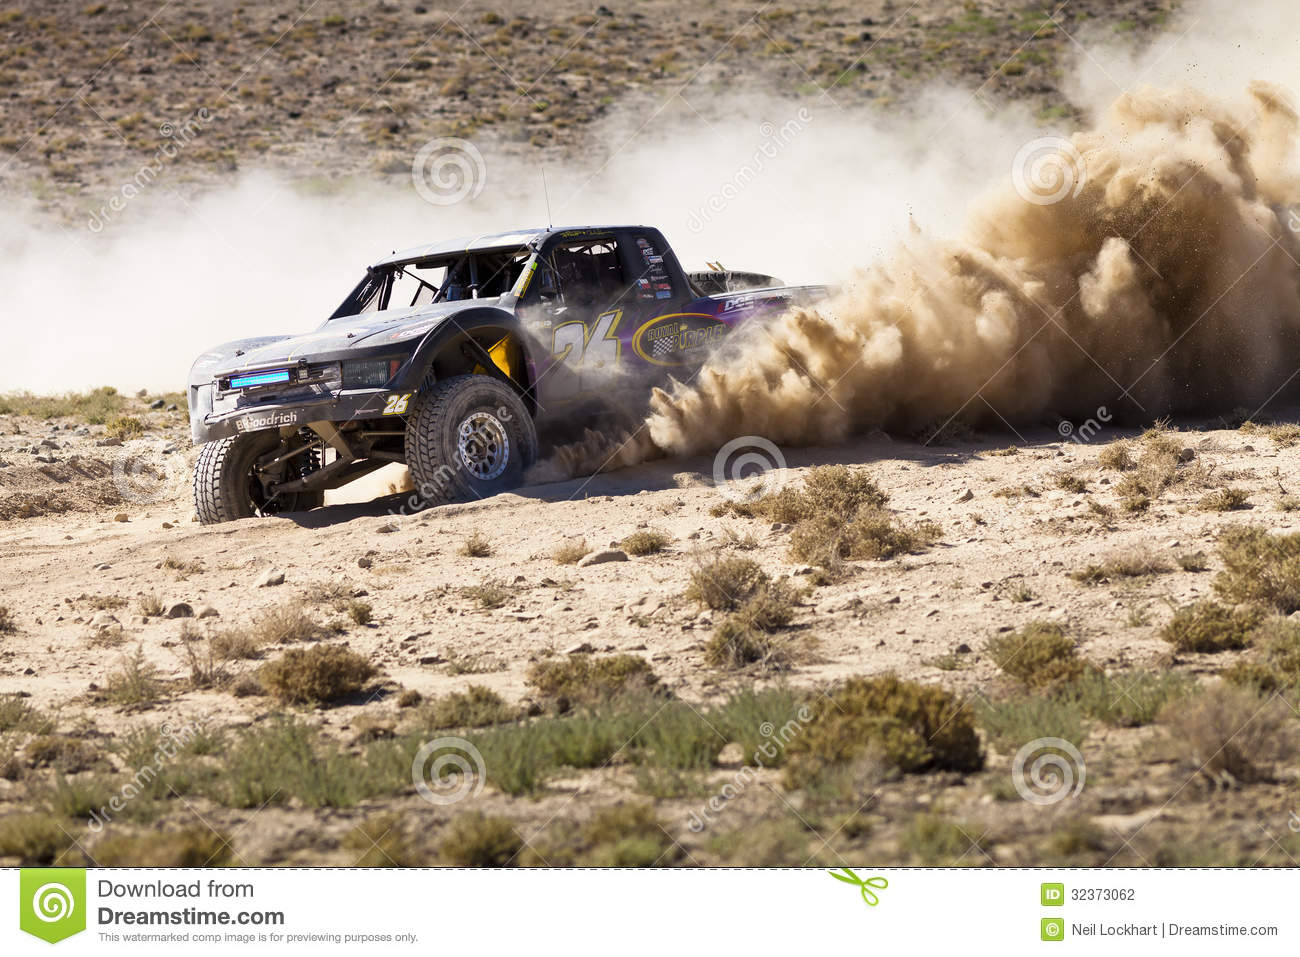 off road truck race with dust plume editorial photography image 32373062. Black Bedroom Furniture Sets. Home Design Ideas